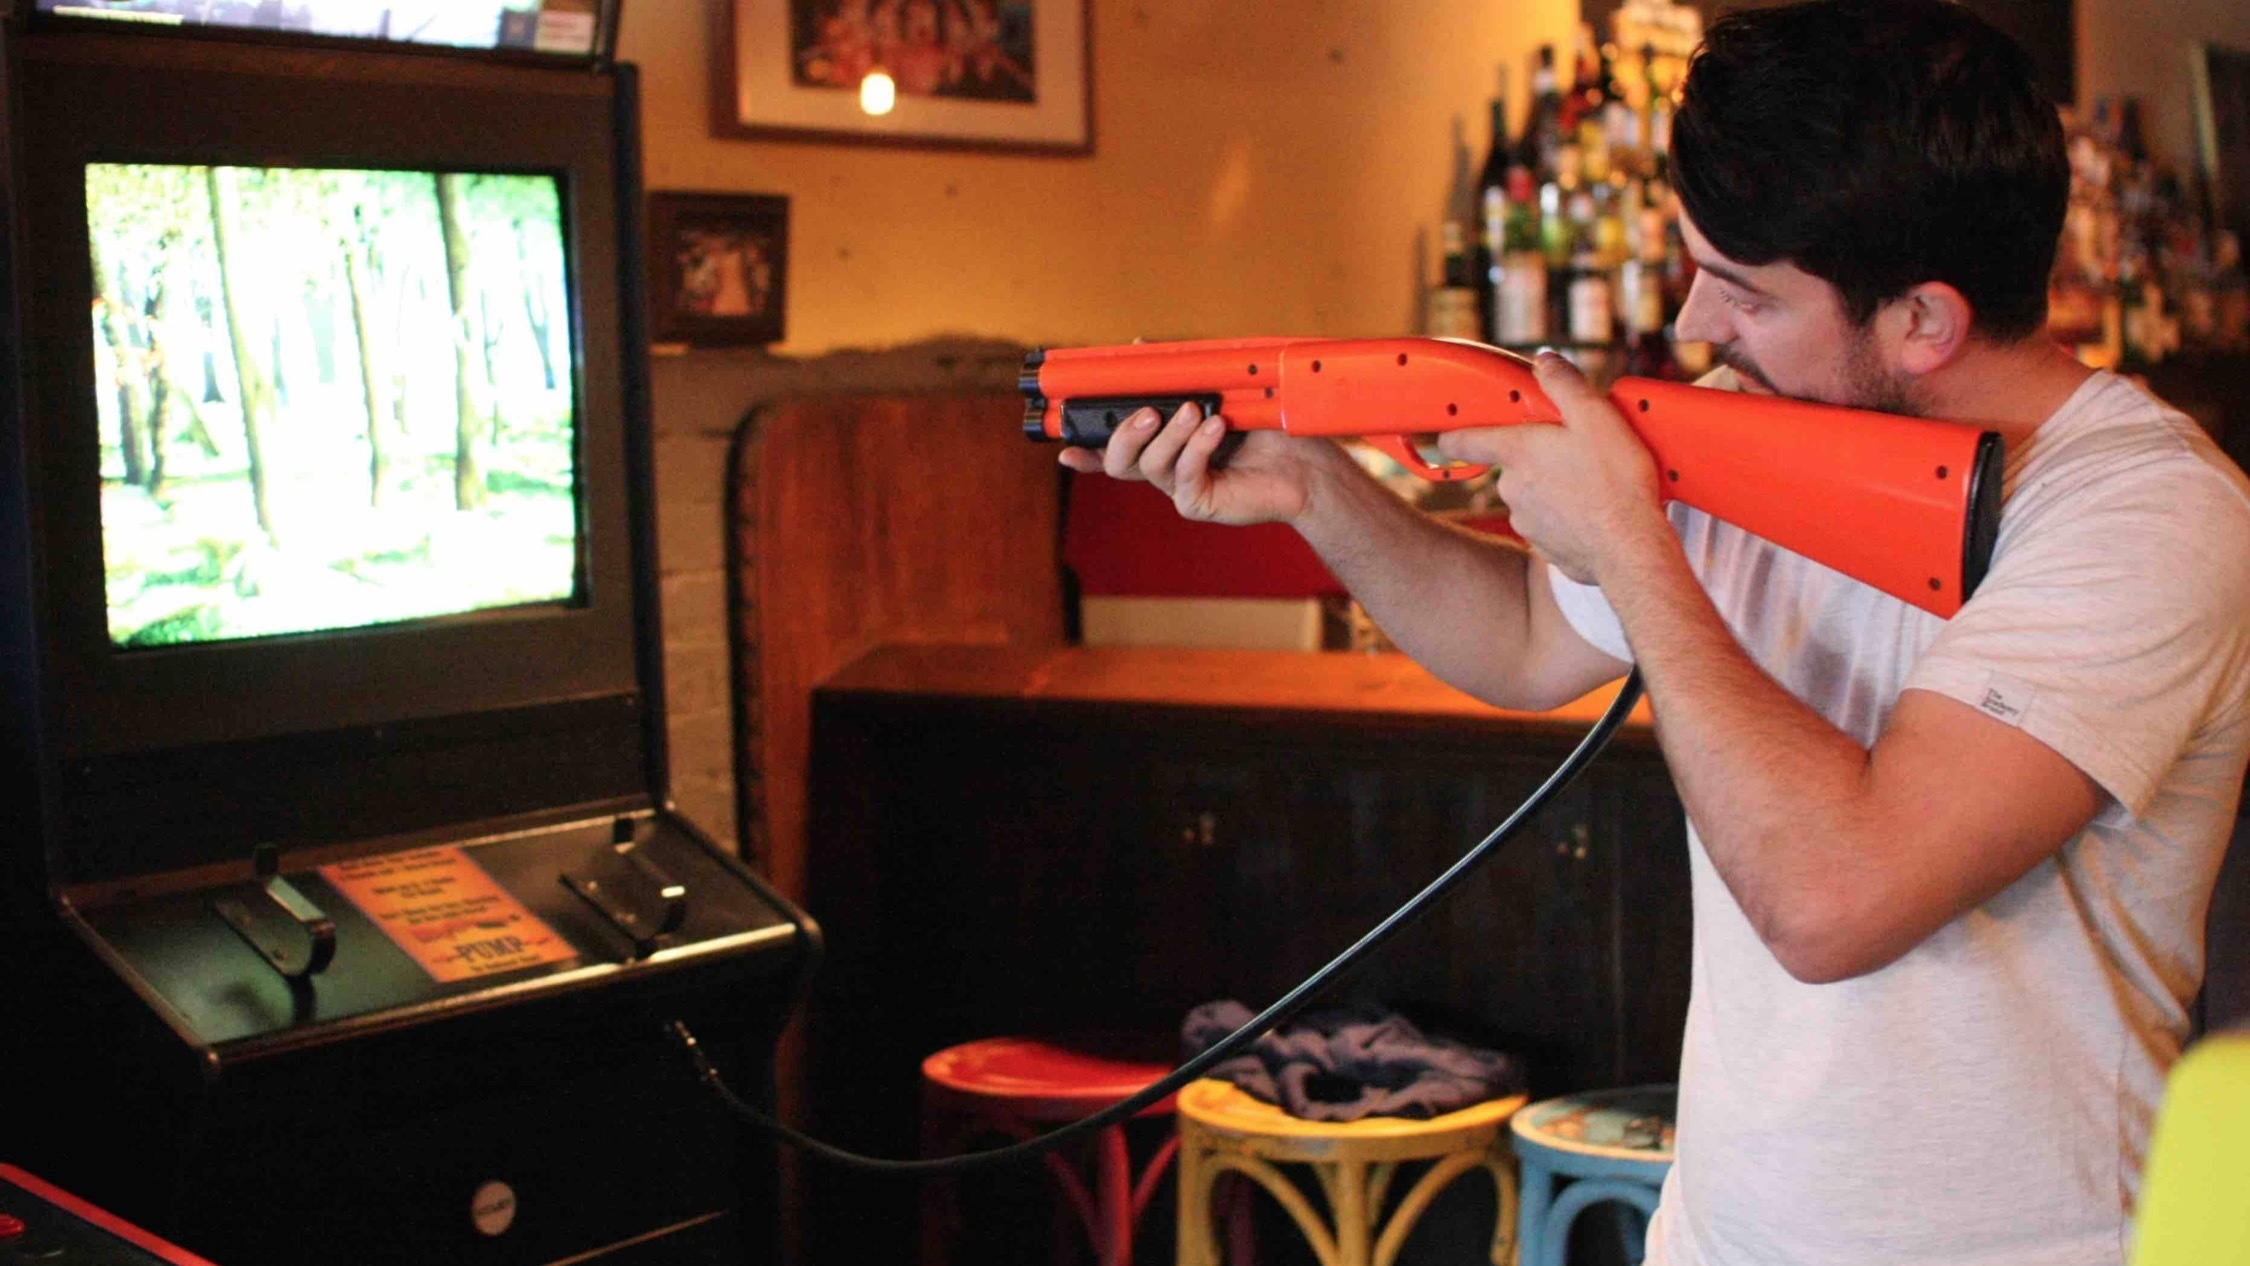 Big Buck Hunter at Pixel Alley